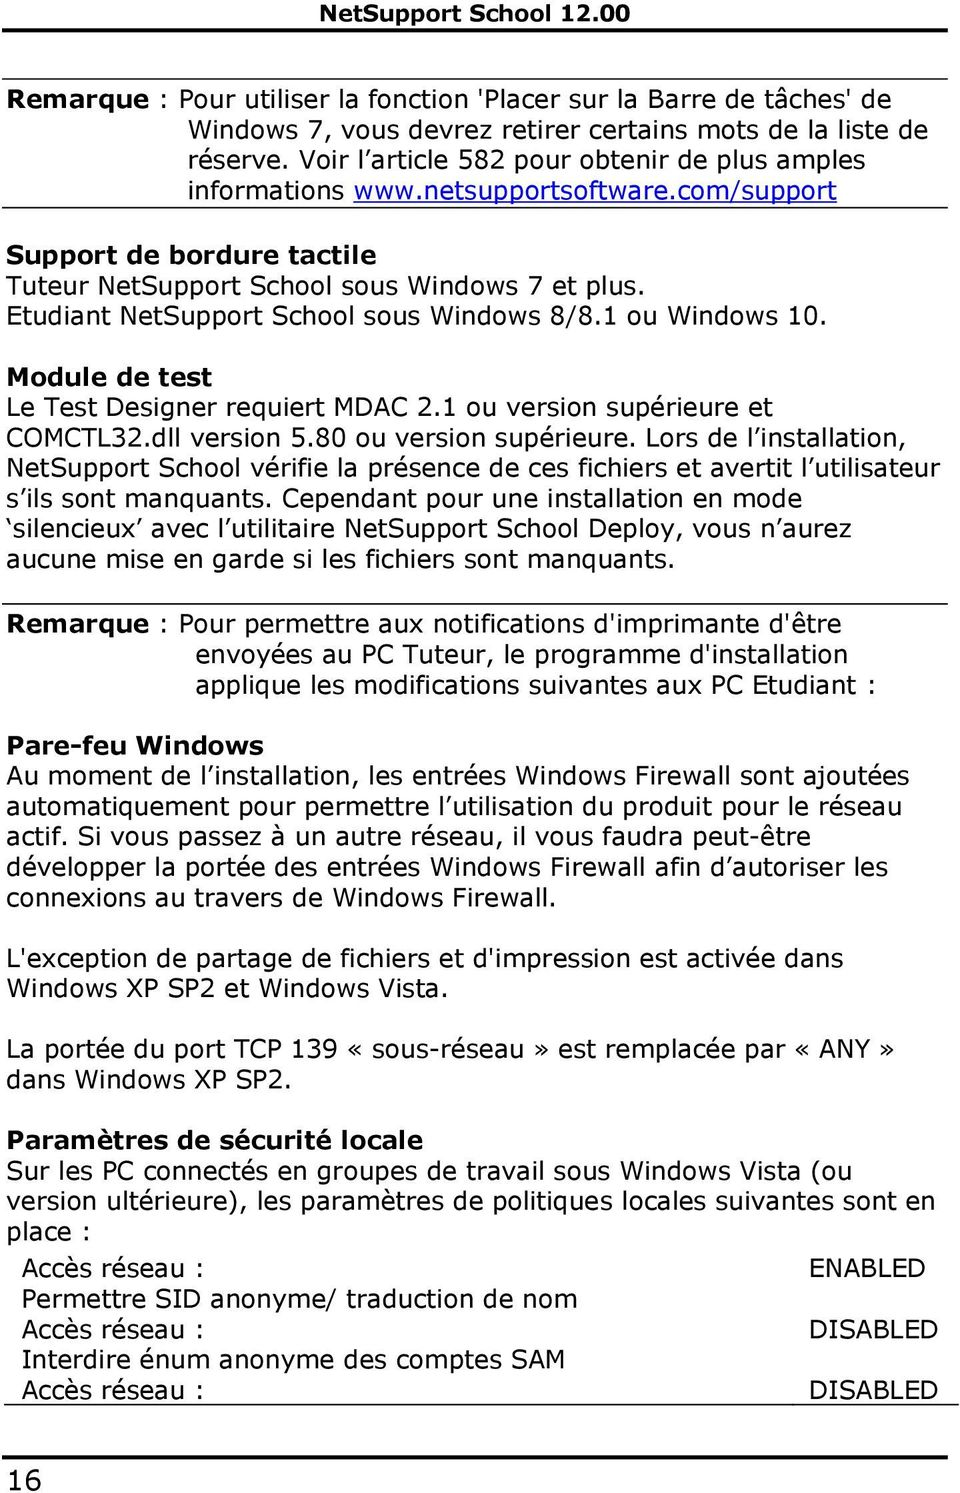 Etudiant NetSupport School sous Windows 8/8.1 ou Windows 10. Module de test Le Test Designer requiert MDAC 2.1 ou version supérieure et COMCTL32.dll version 5.80 ou version supérieure.